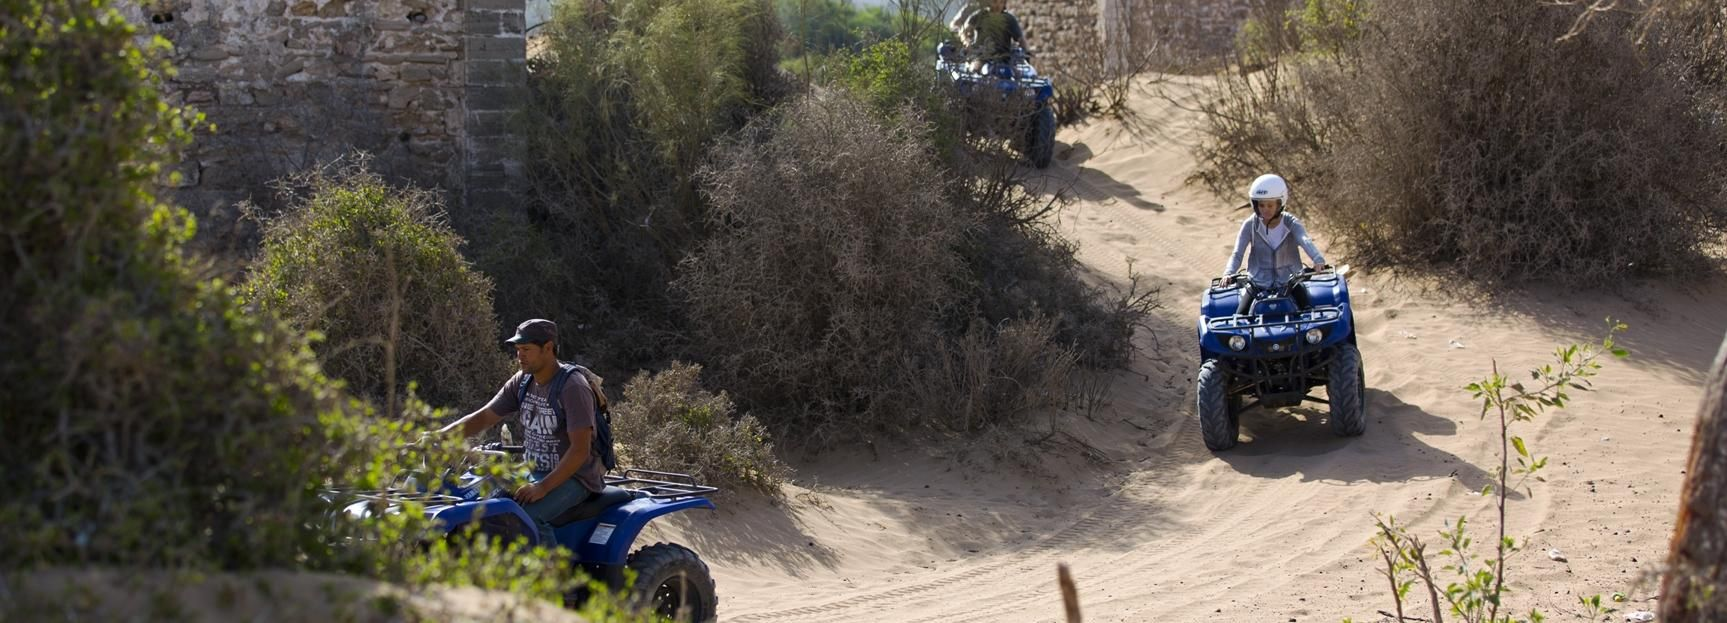 Essaouira: Full-Day Quad Biking Adventure with Lunch